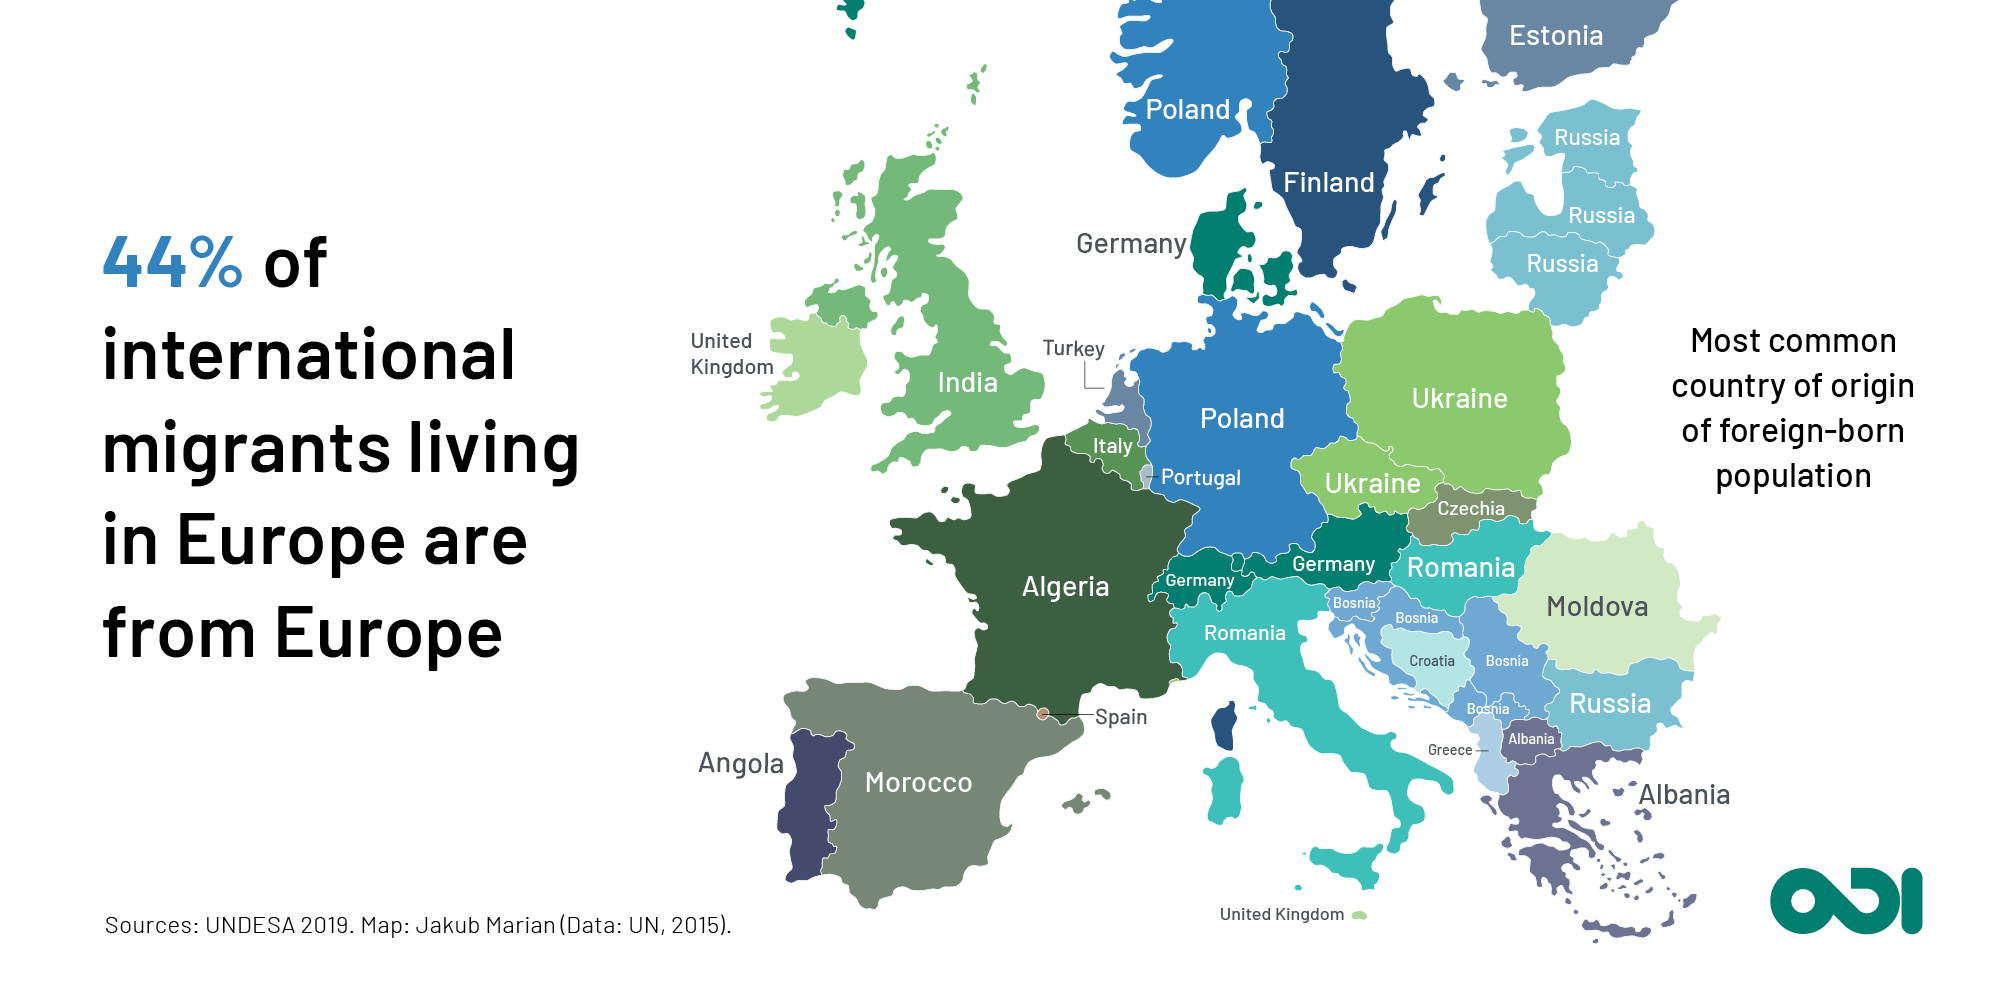 Infographic: 44% of international migrants living in Europe are from Europe